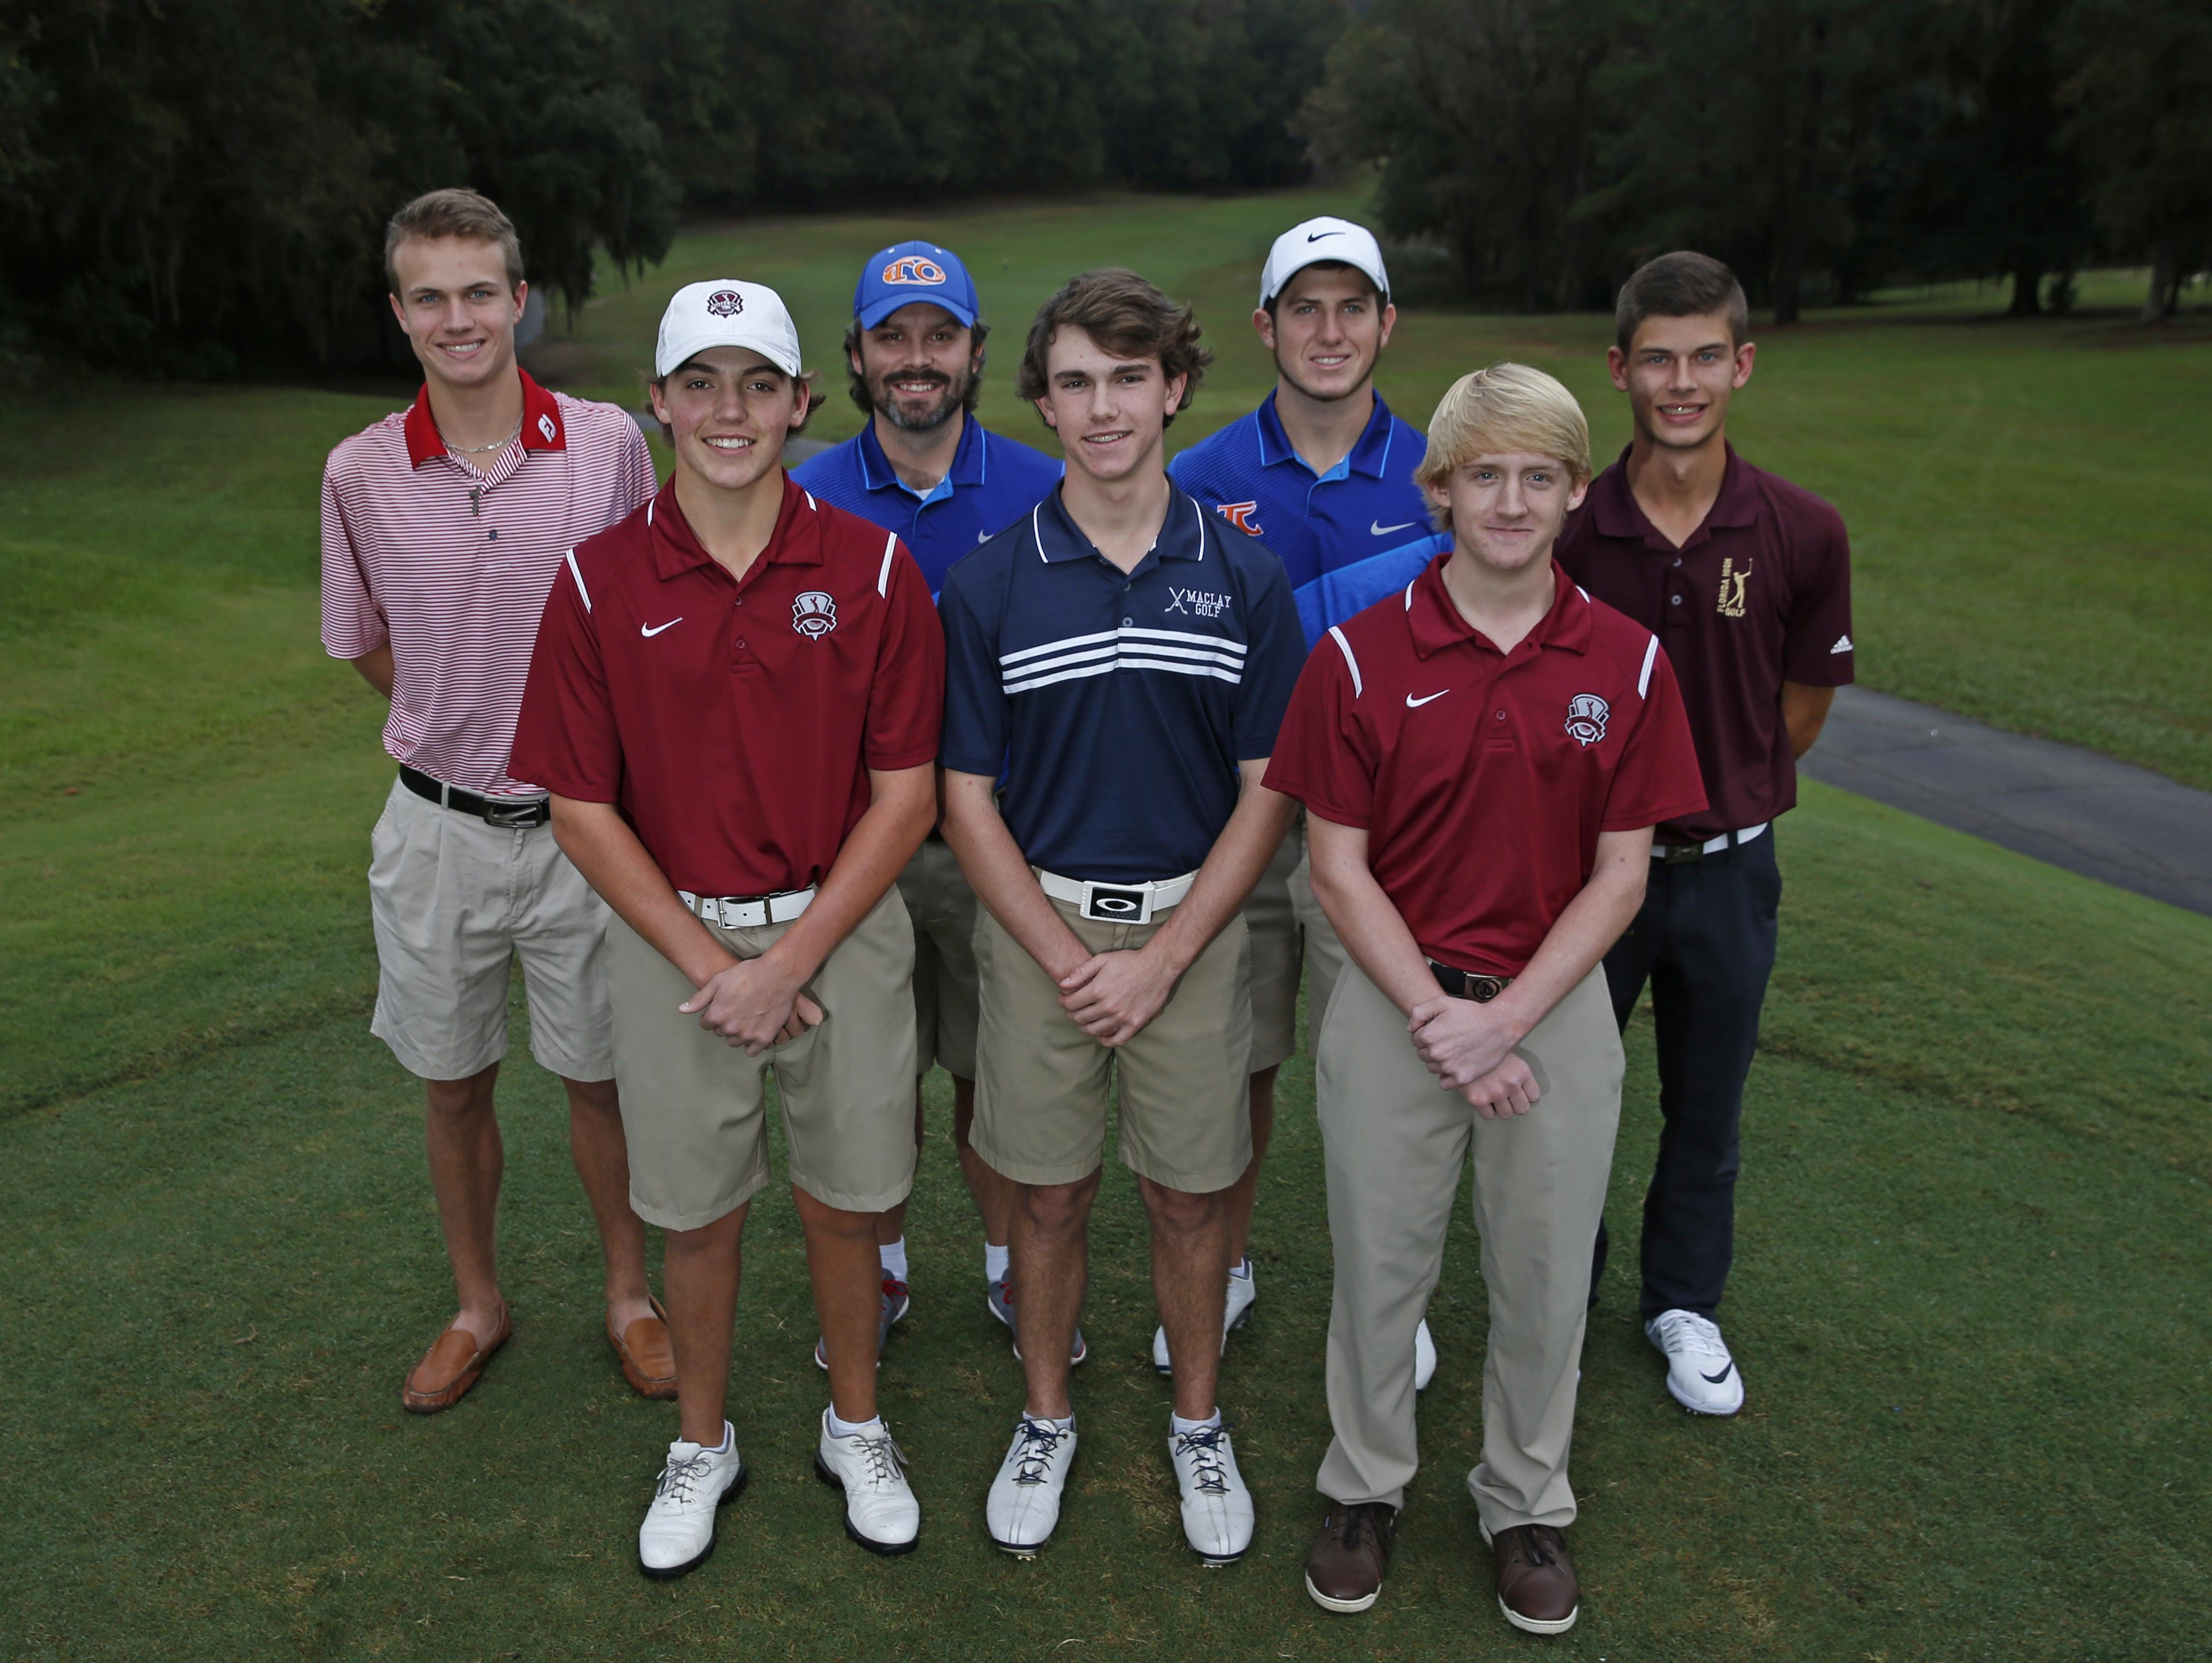 The 2015 All-Big Bend boys golf first team. Front row, from left: Connor Futrell (Chiles), Bryson Bianco (Maclay), Bryce Johnson (Chiles); Back row, from left: Jordan Jones (Leon), Coach of the Year John Carson (Taylor County), Player of the Year Cole Wentworth (Taylor County), Stephen Davis (Florida High)